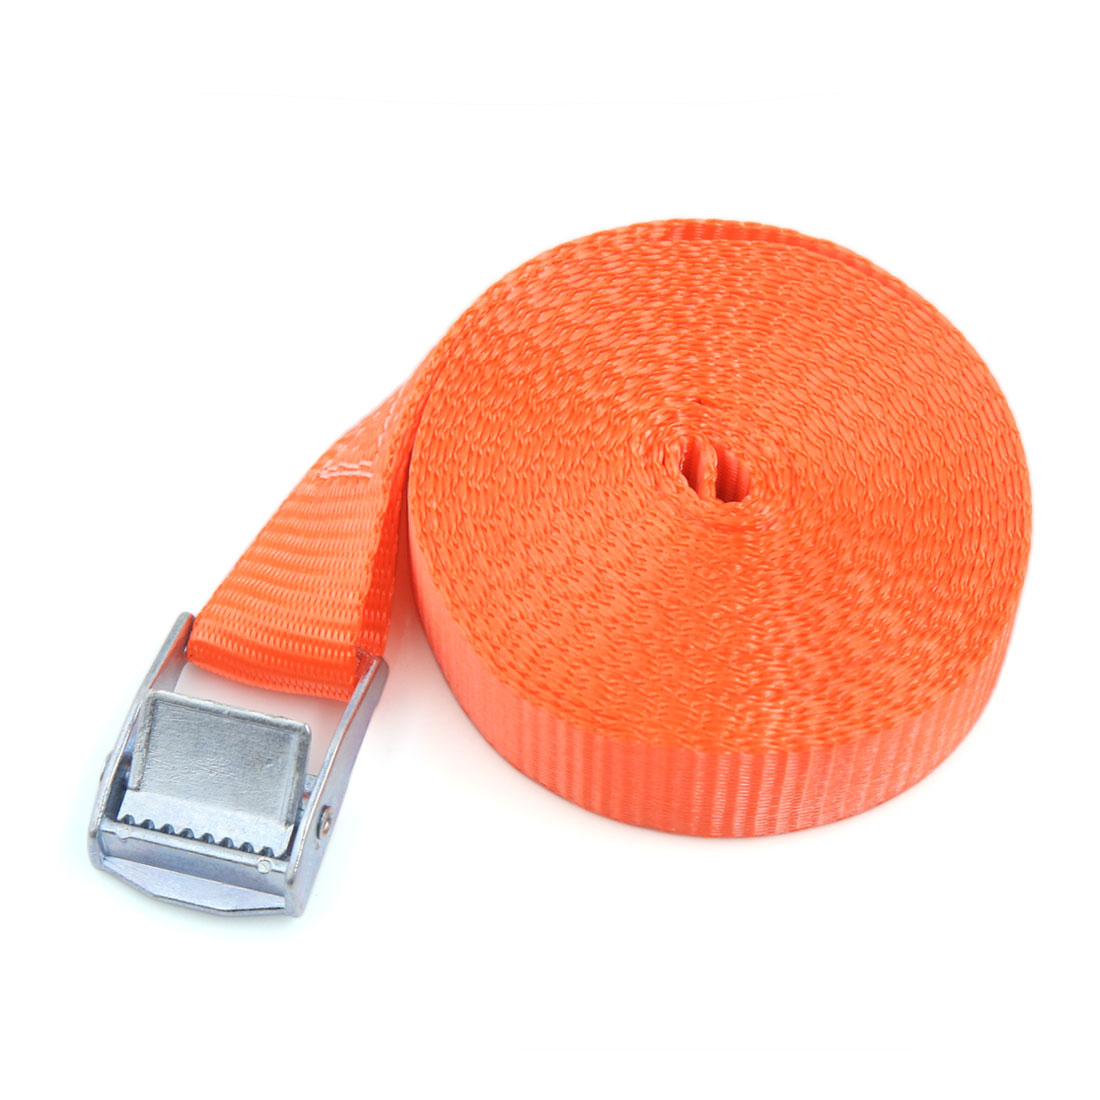 5M x 25MM Metal Cam Buckle Tie Down Straps Cargo Lash Luggage Bag Belt Orange